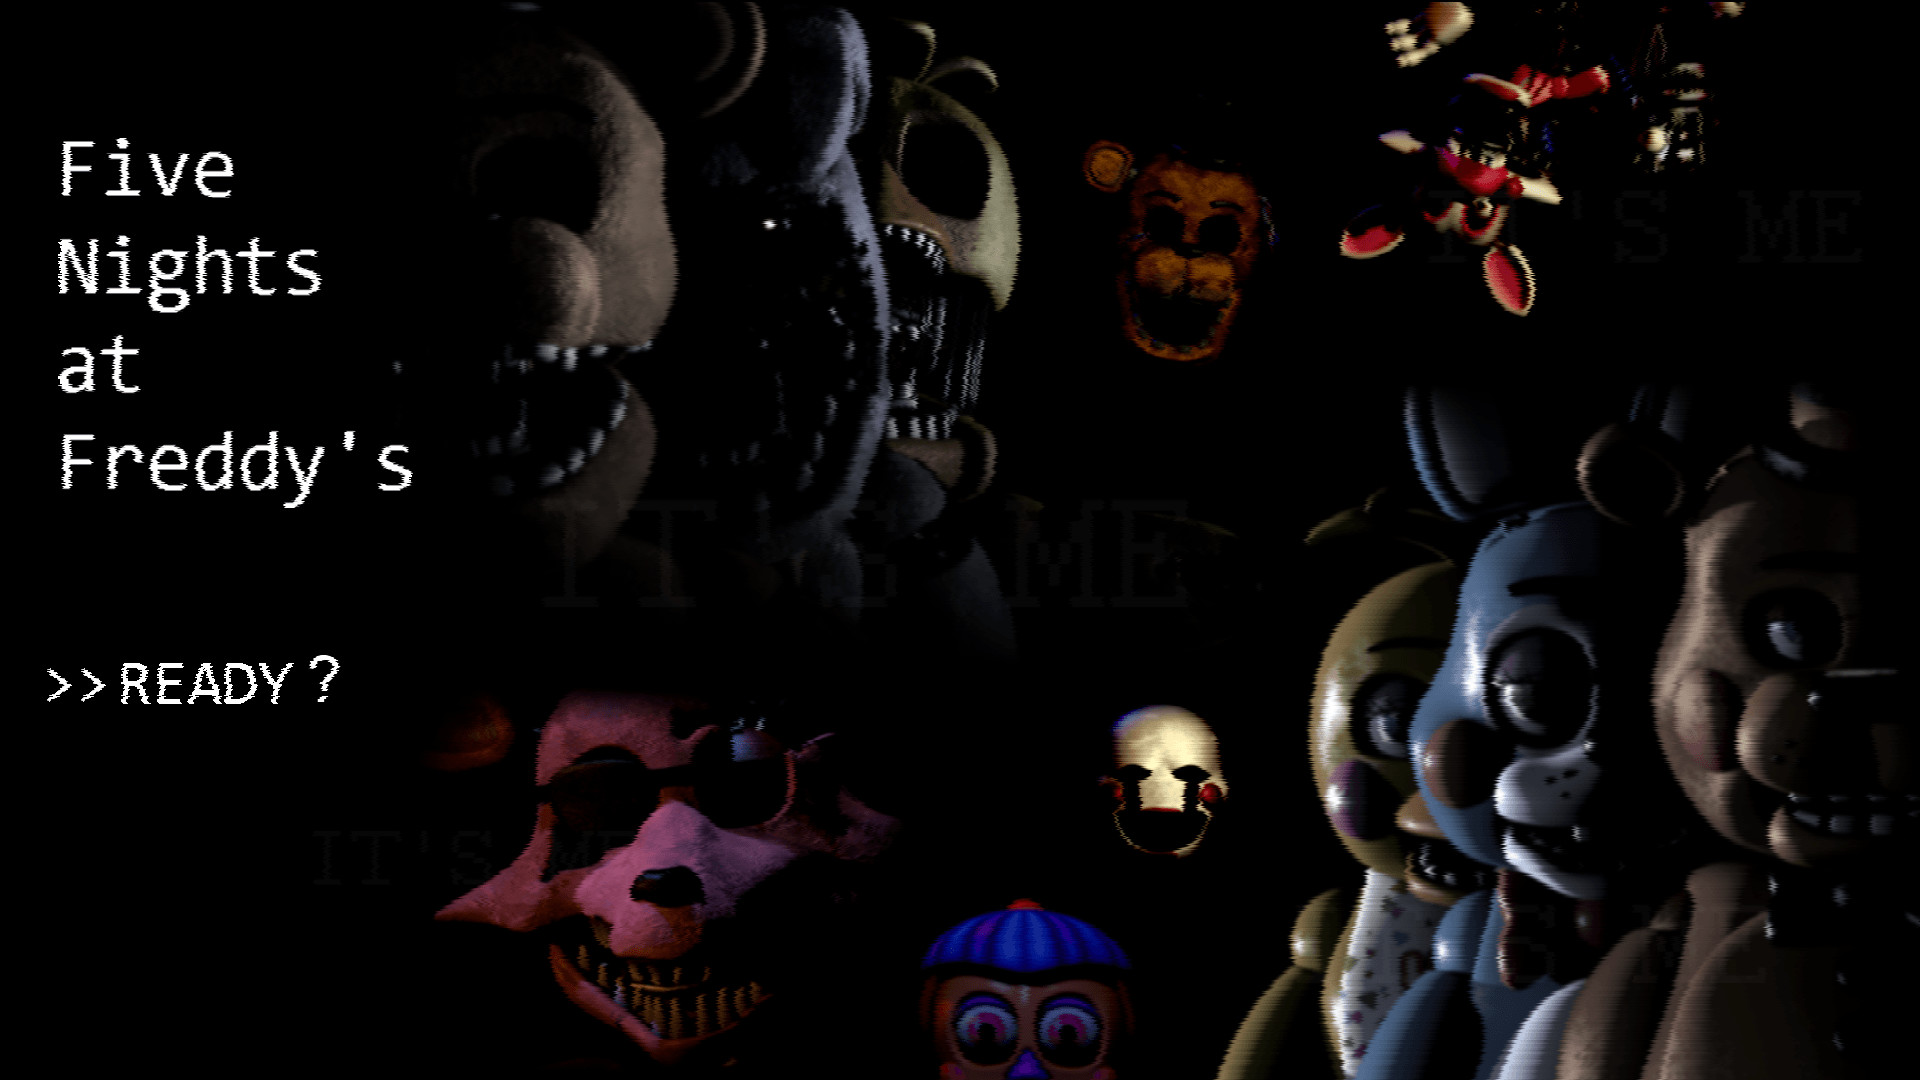 1920x1080 Five Nights At Freddys FNAF Wallpapers - Wallpaper Cave